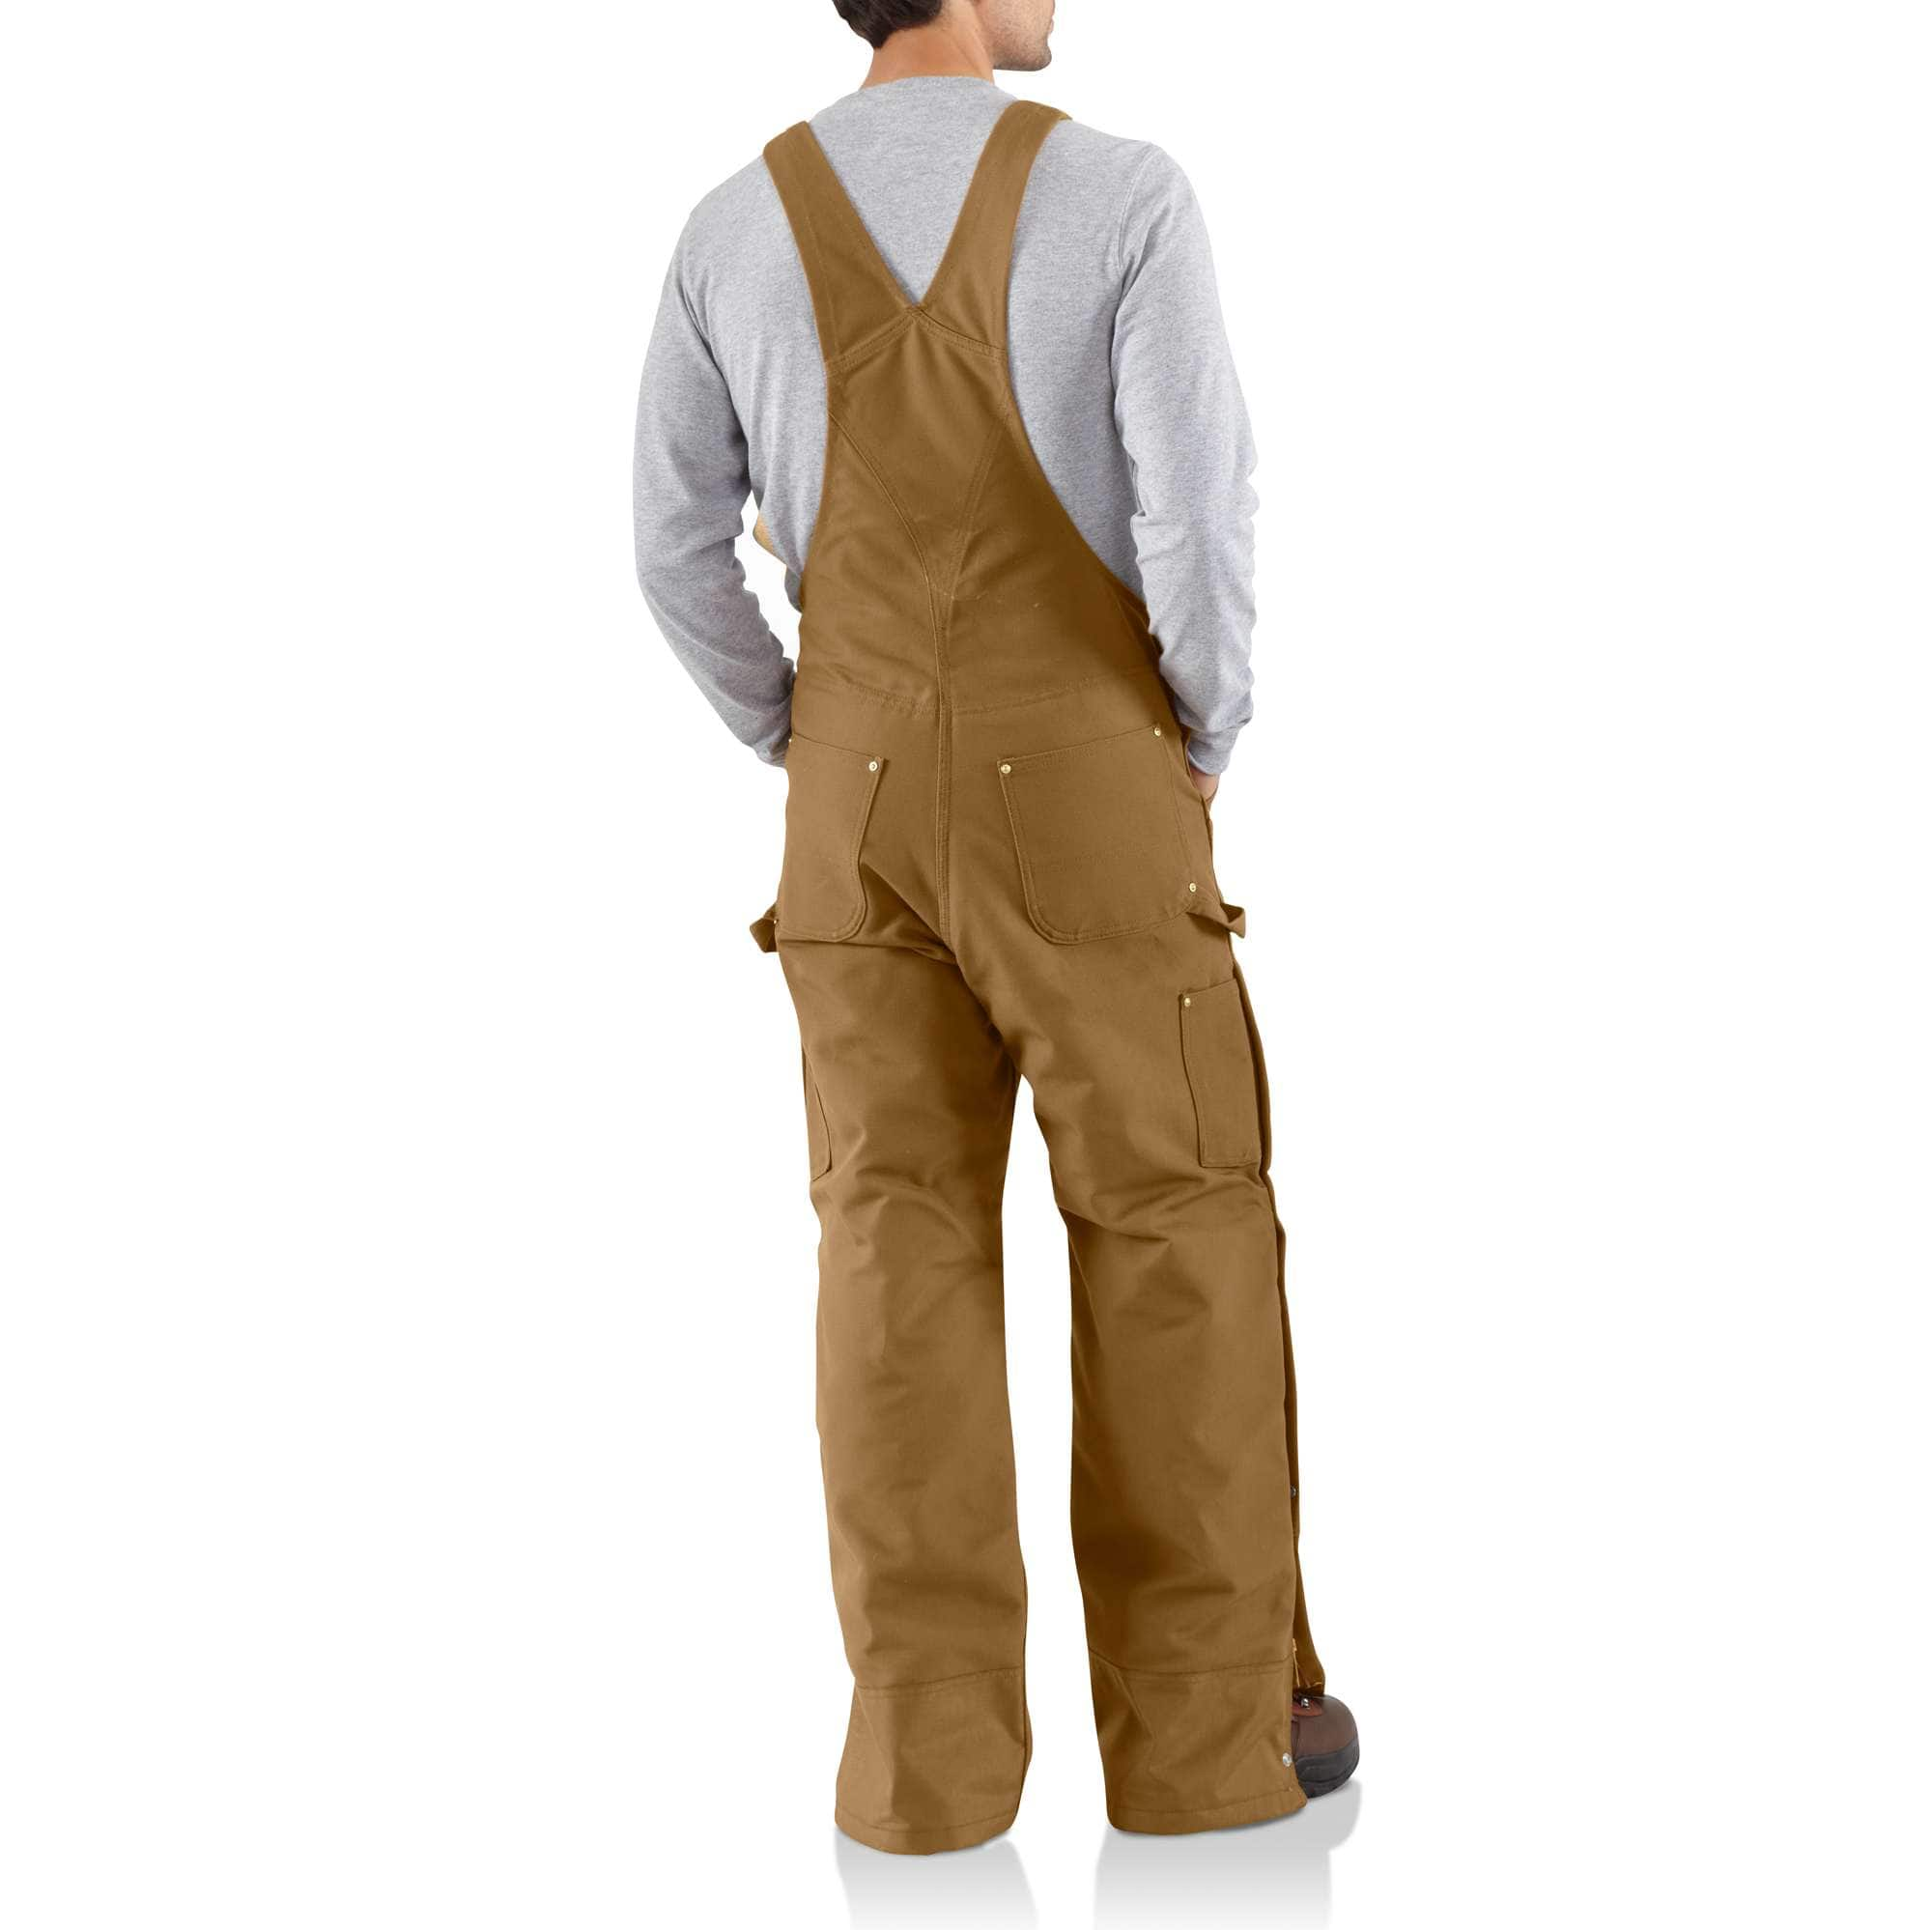 199f8f62c85fb Men's Duck Zip-to-Thigh Bib Overall/Quilt Lined R41 | Carhartt